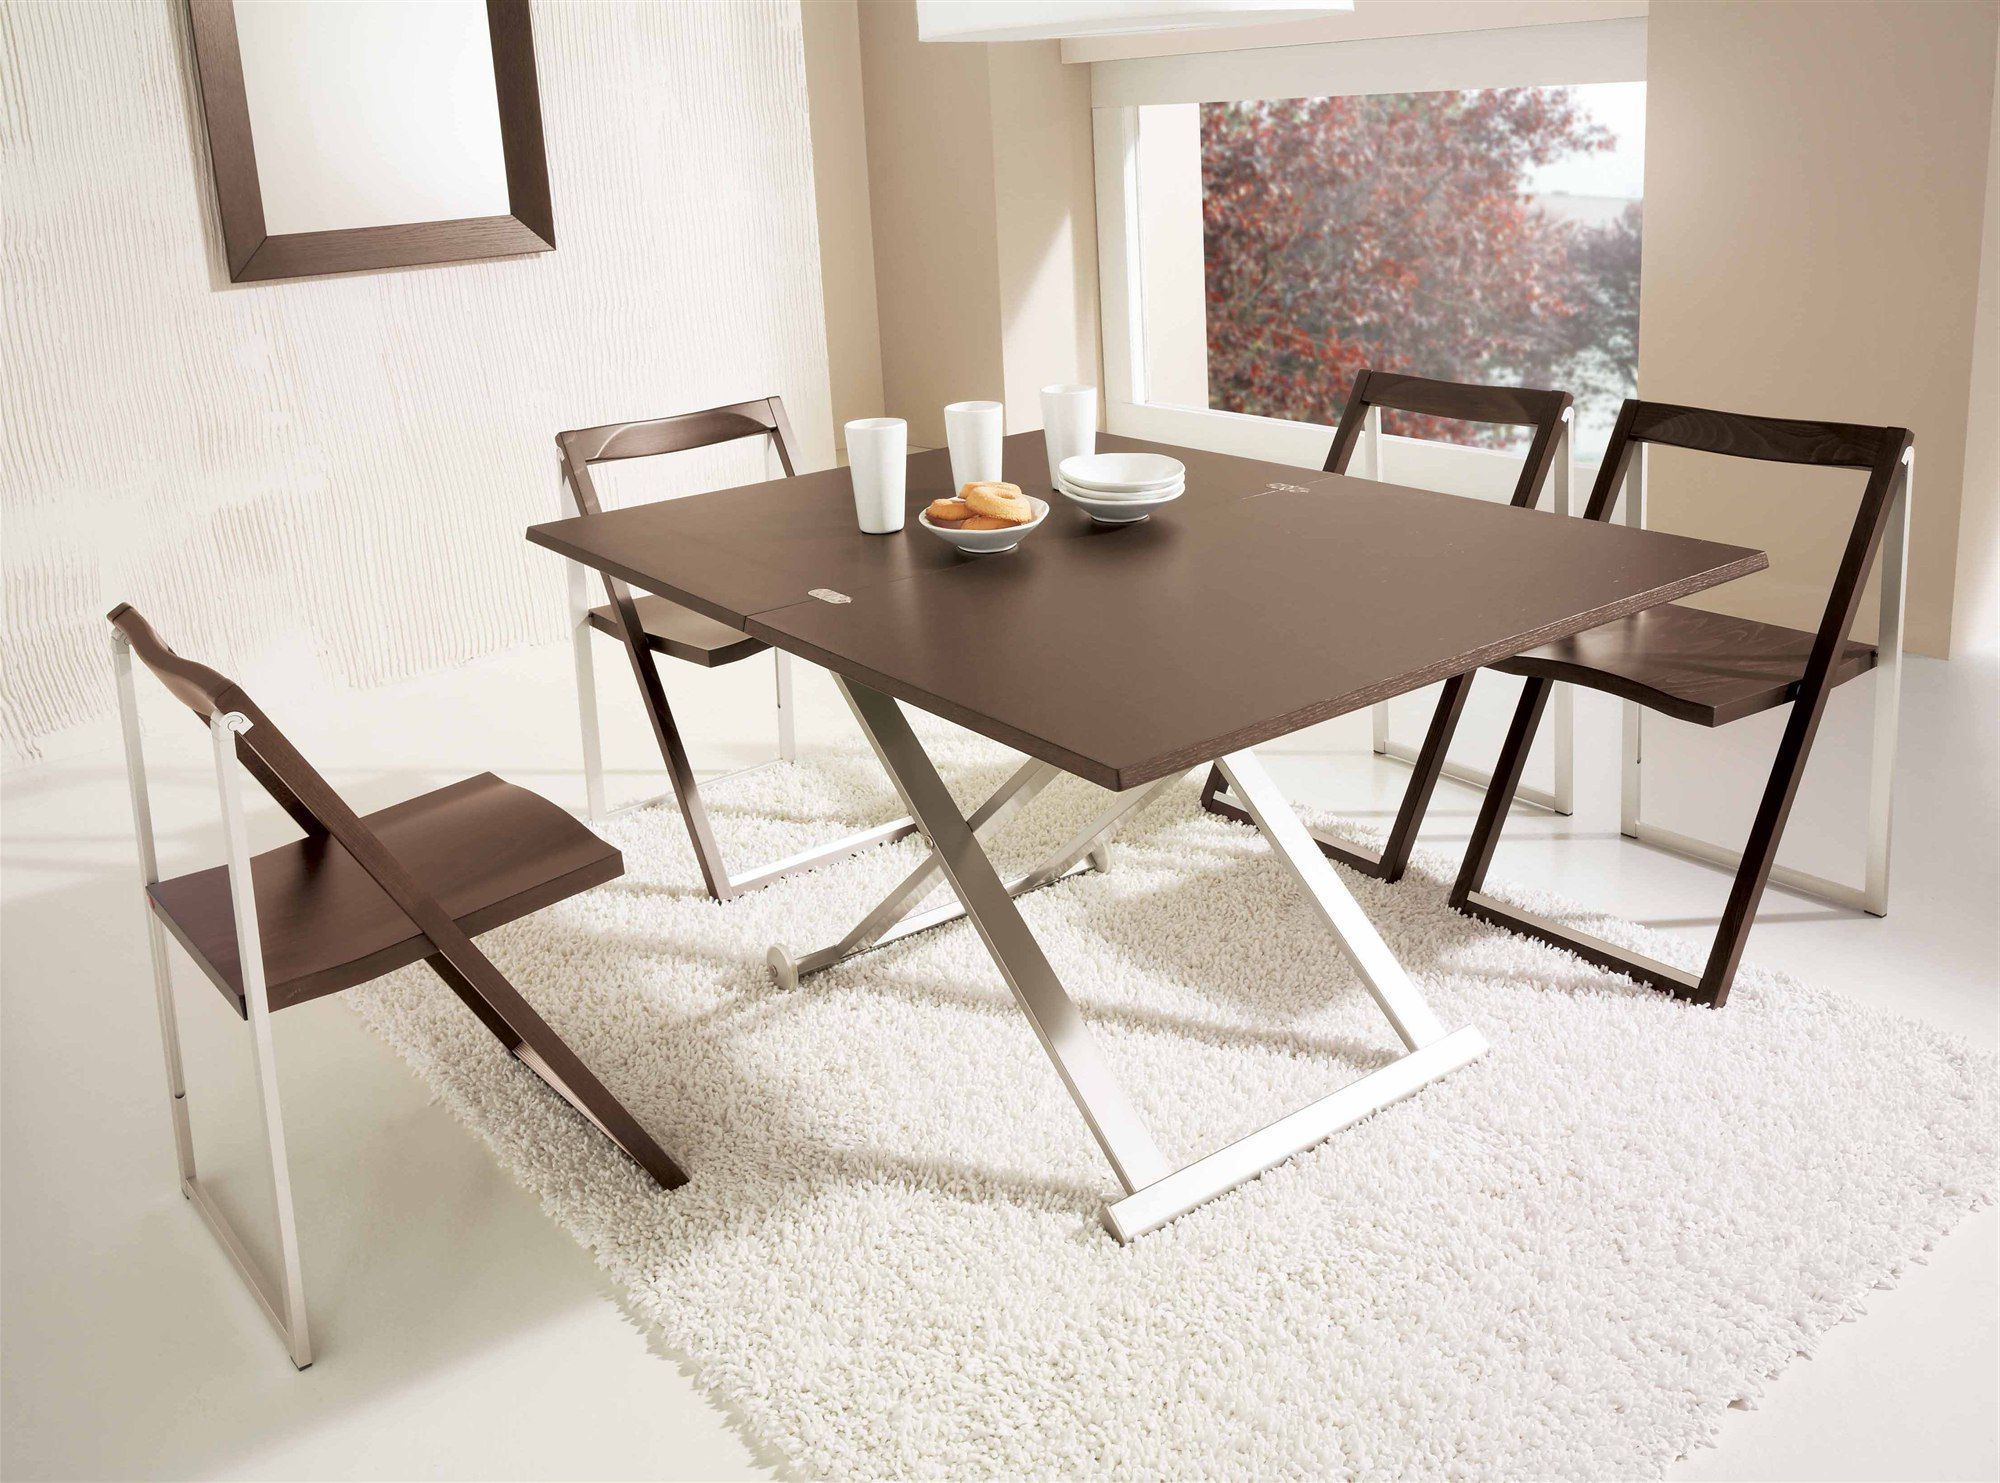 Modern Simple Folding Dining Table With Four Folding Chair , Simple Design  And Safe Room Space With Folding Dining Table In Diningroom Categ.